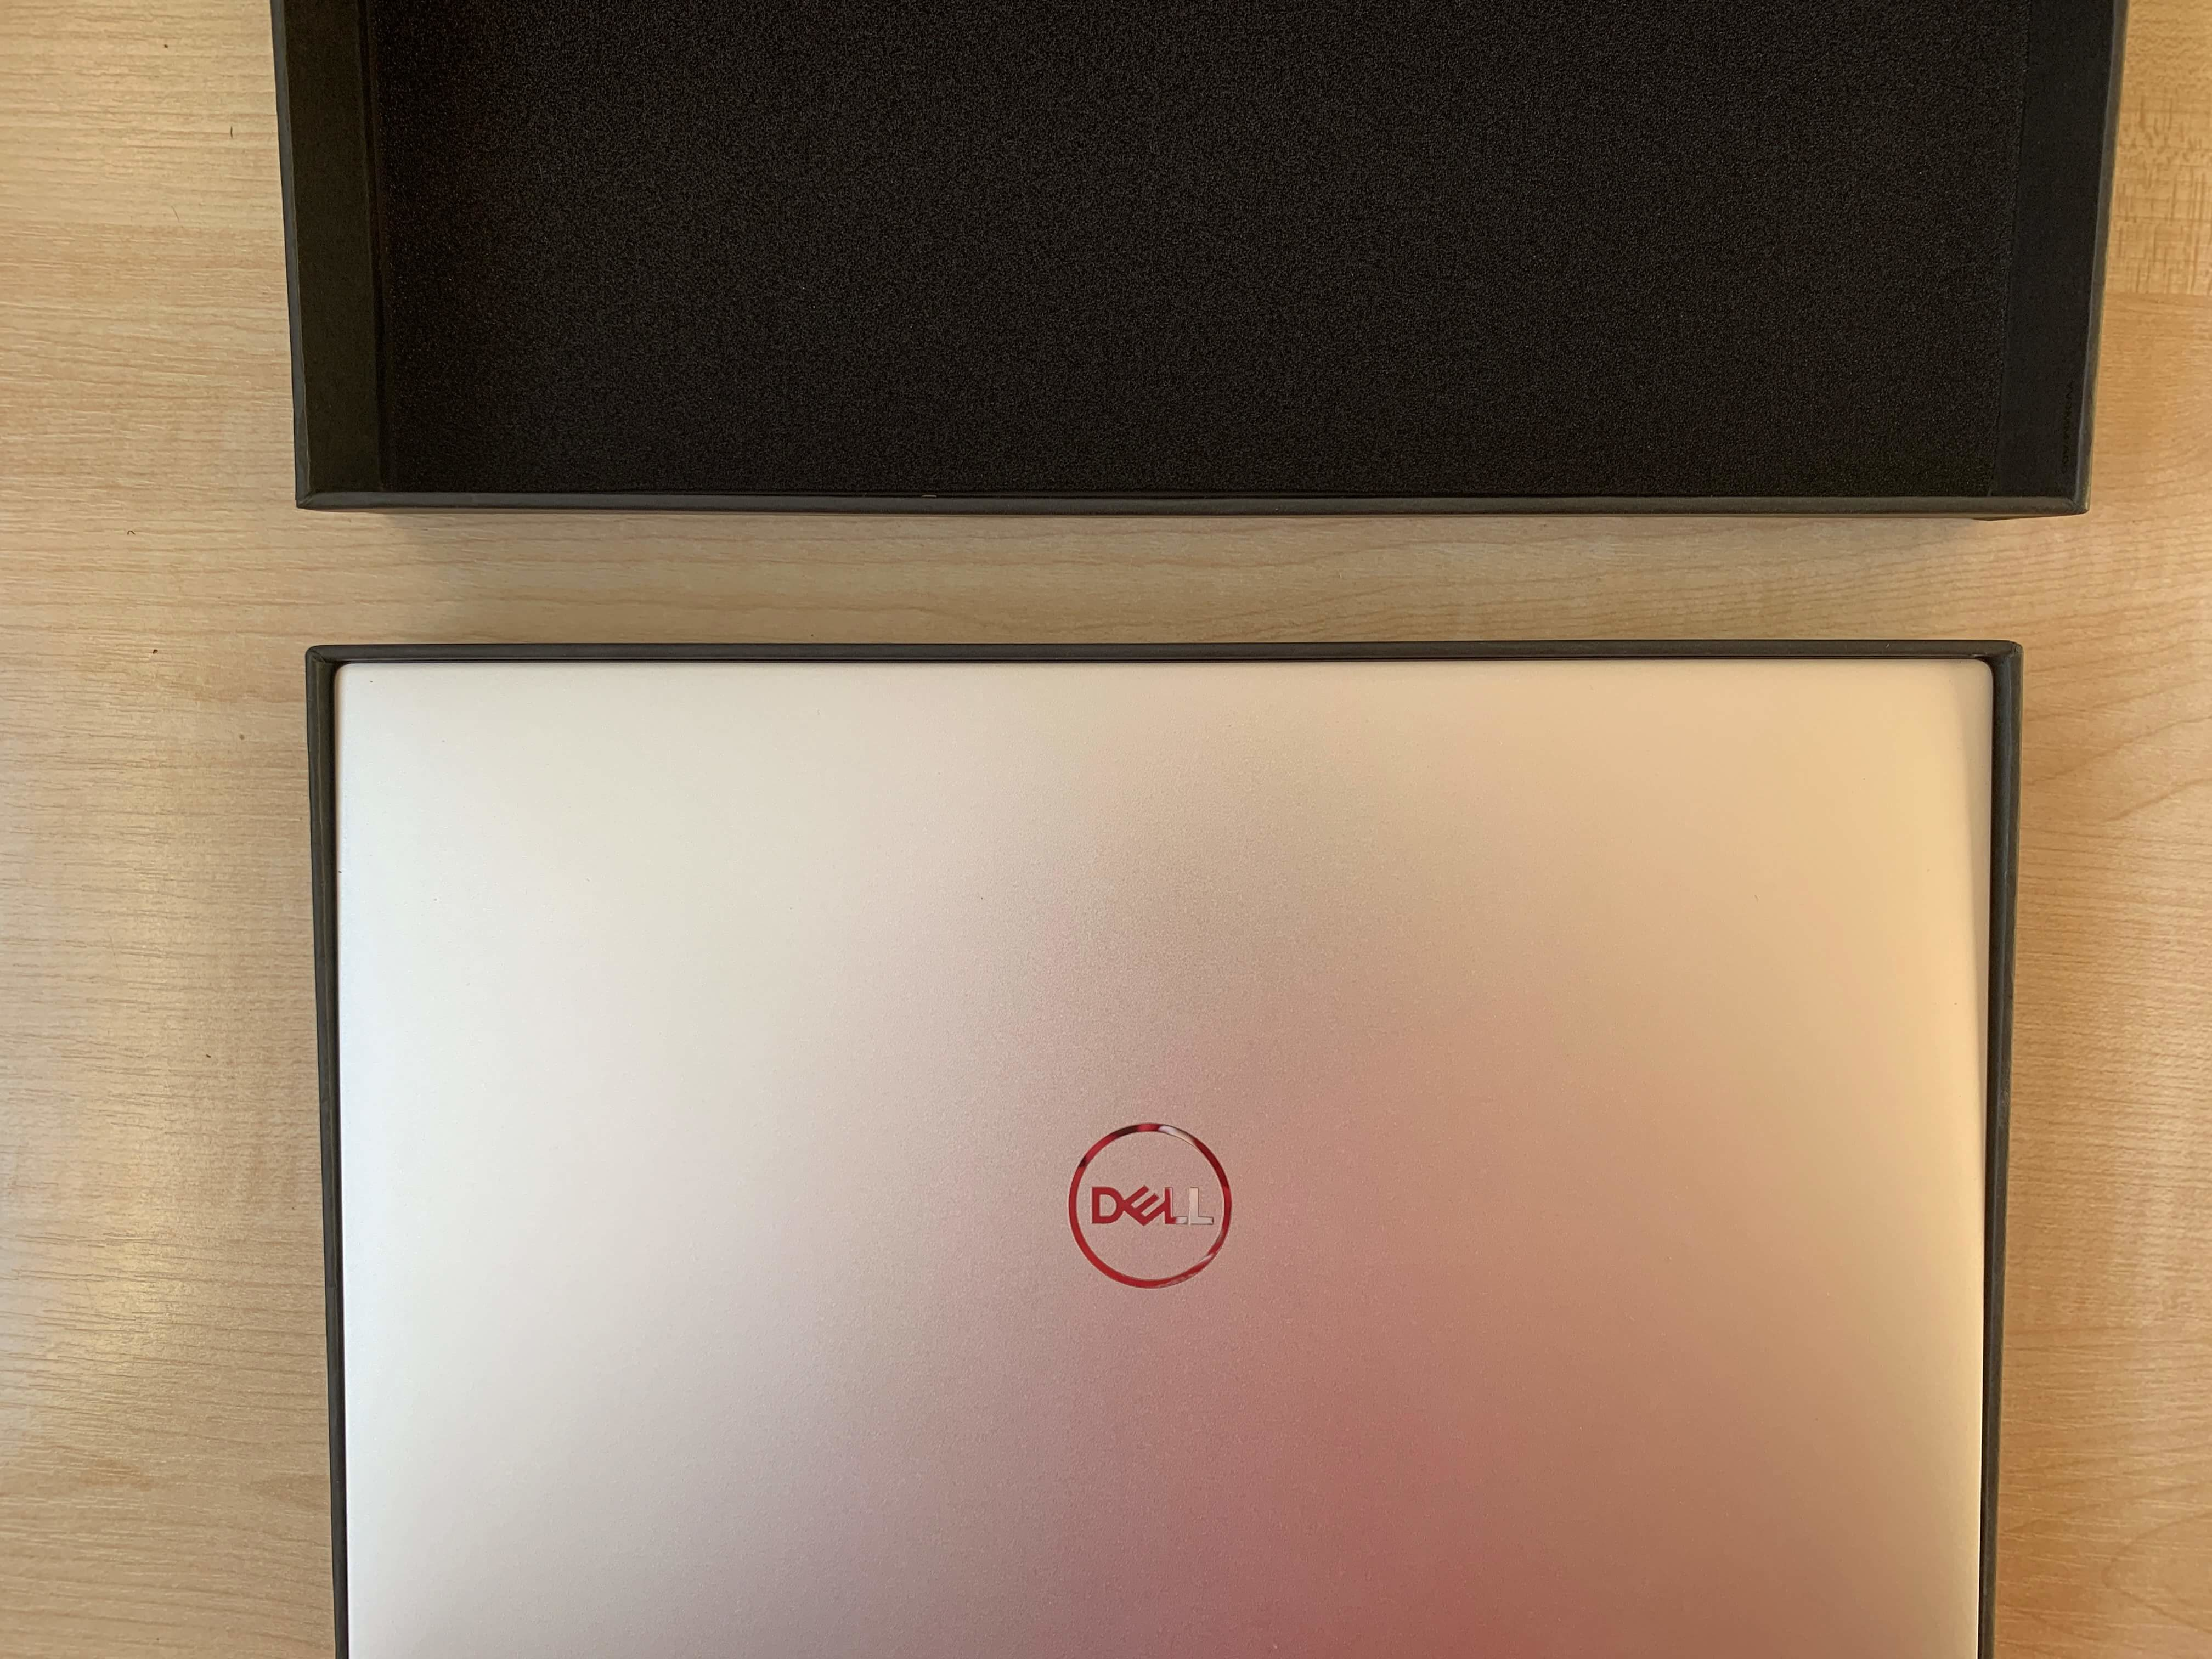 Dell XPS 13 7390 karton